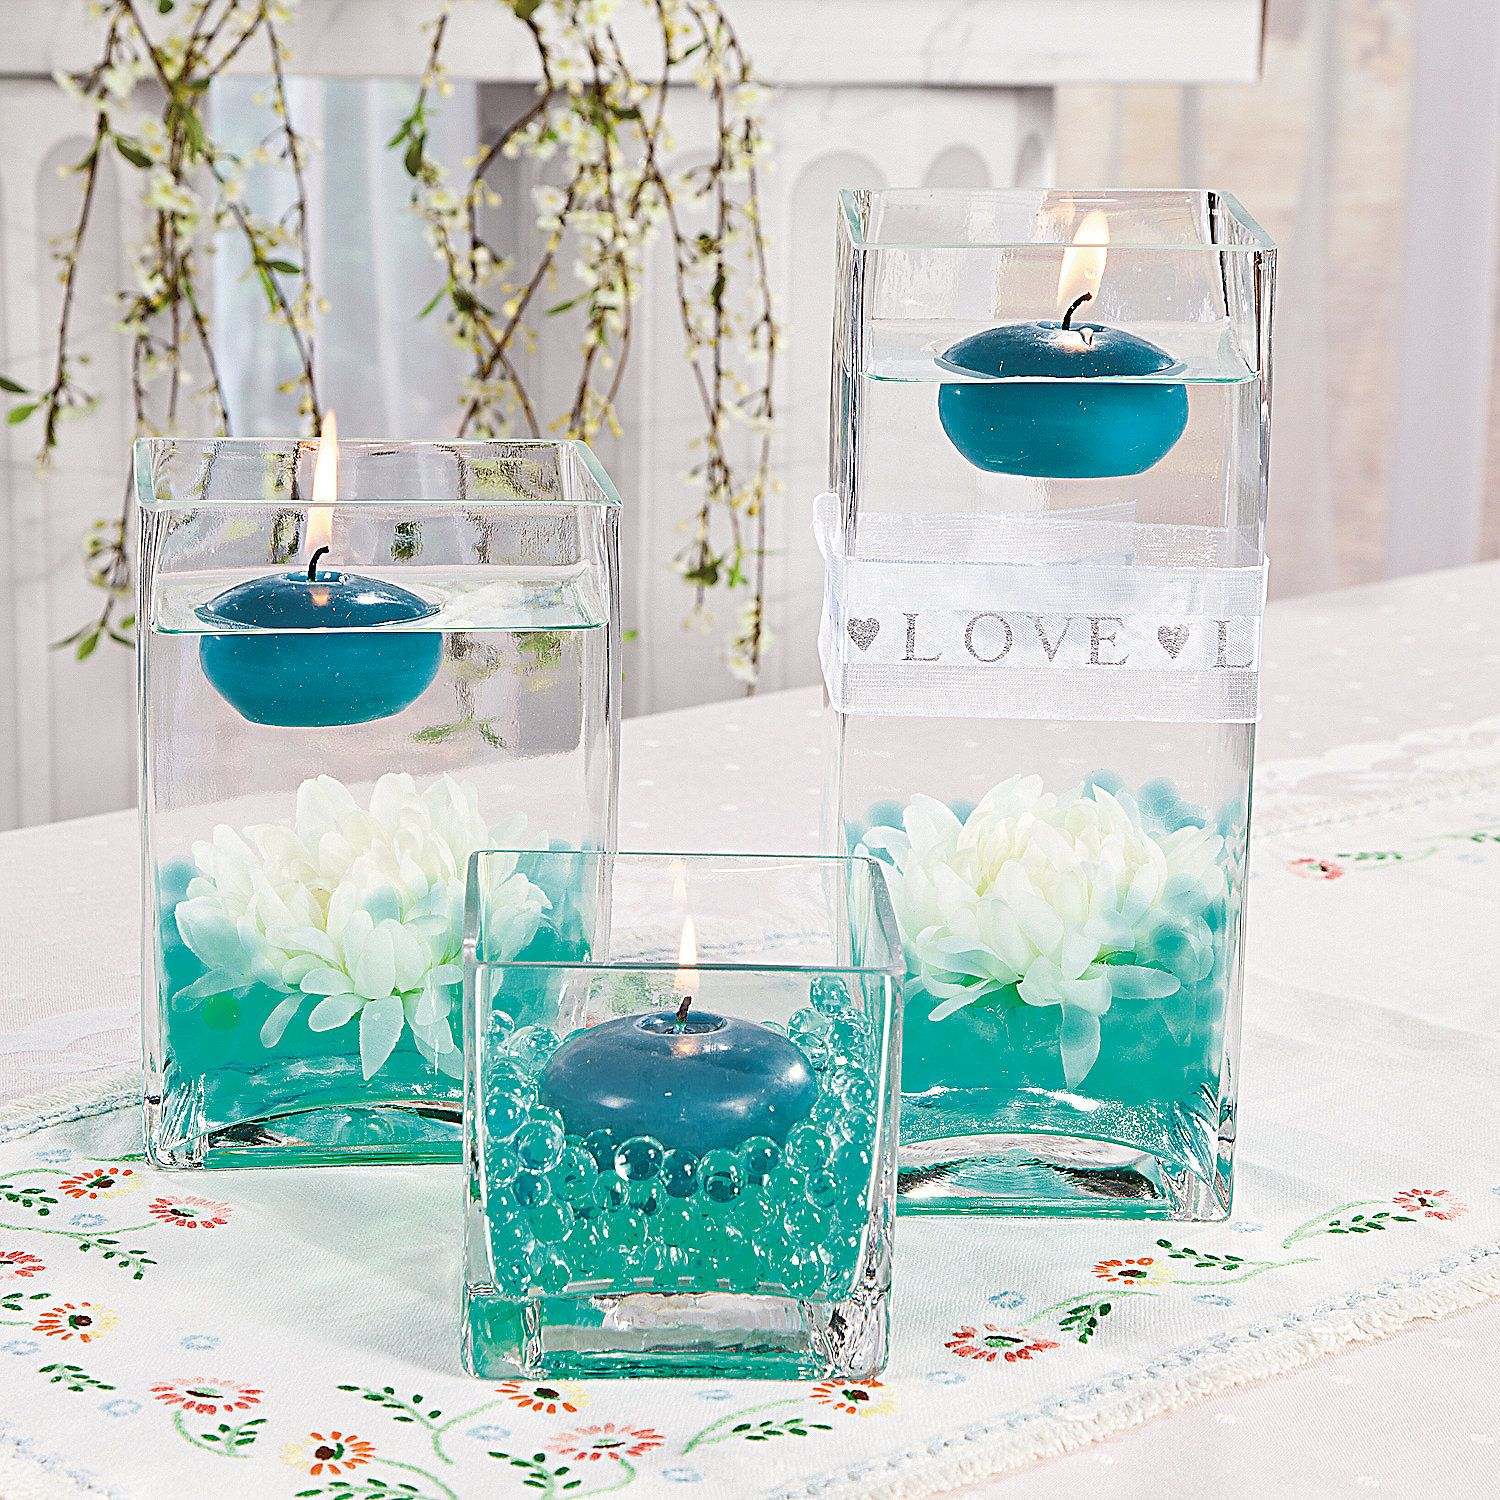 Floating Candle Centerpieces -Turquoise Water Beads $2.00 Each Makes ...